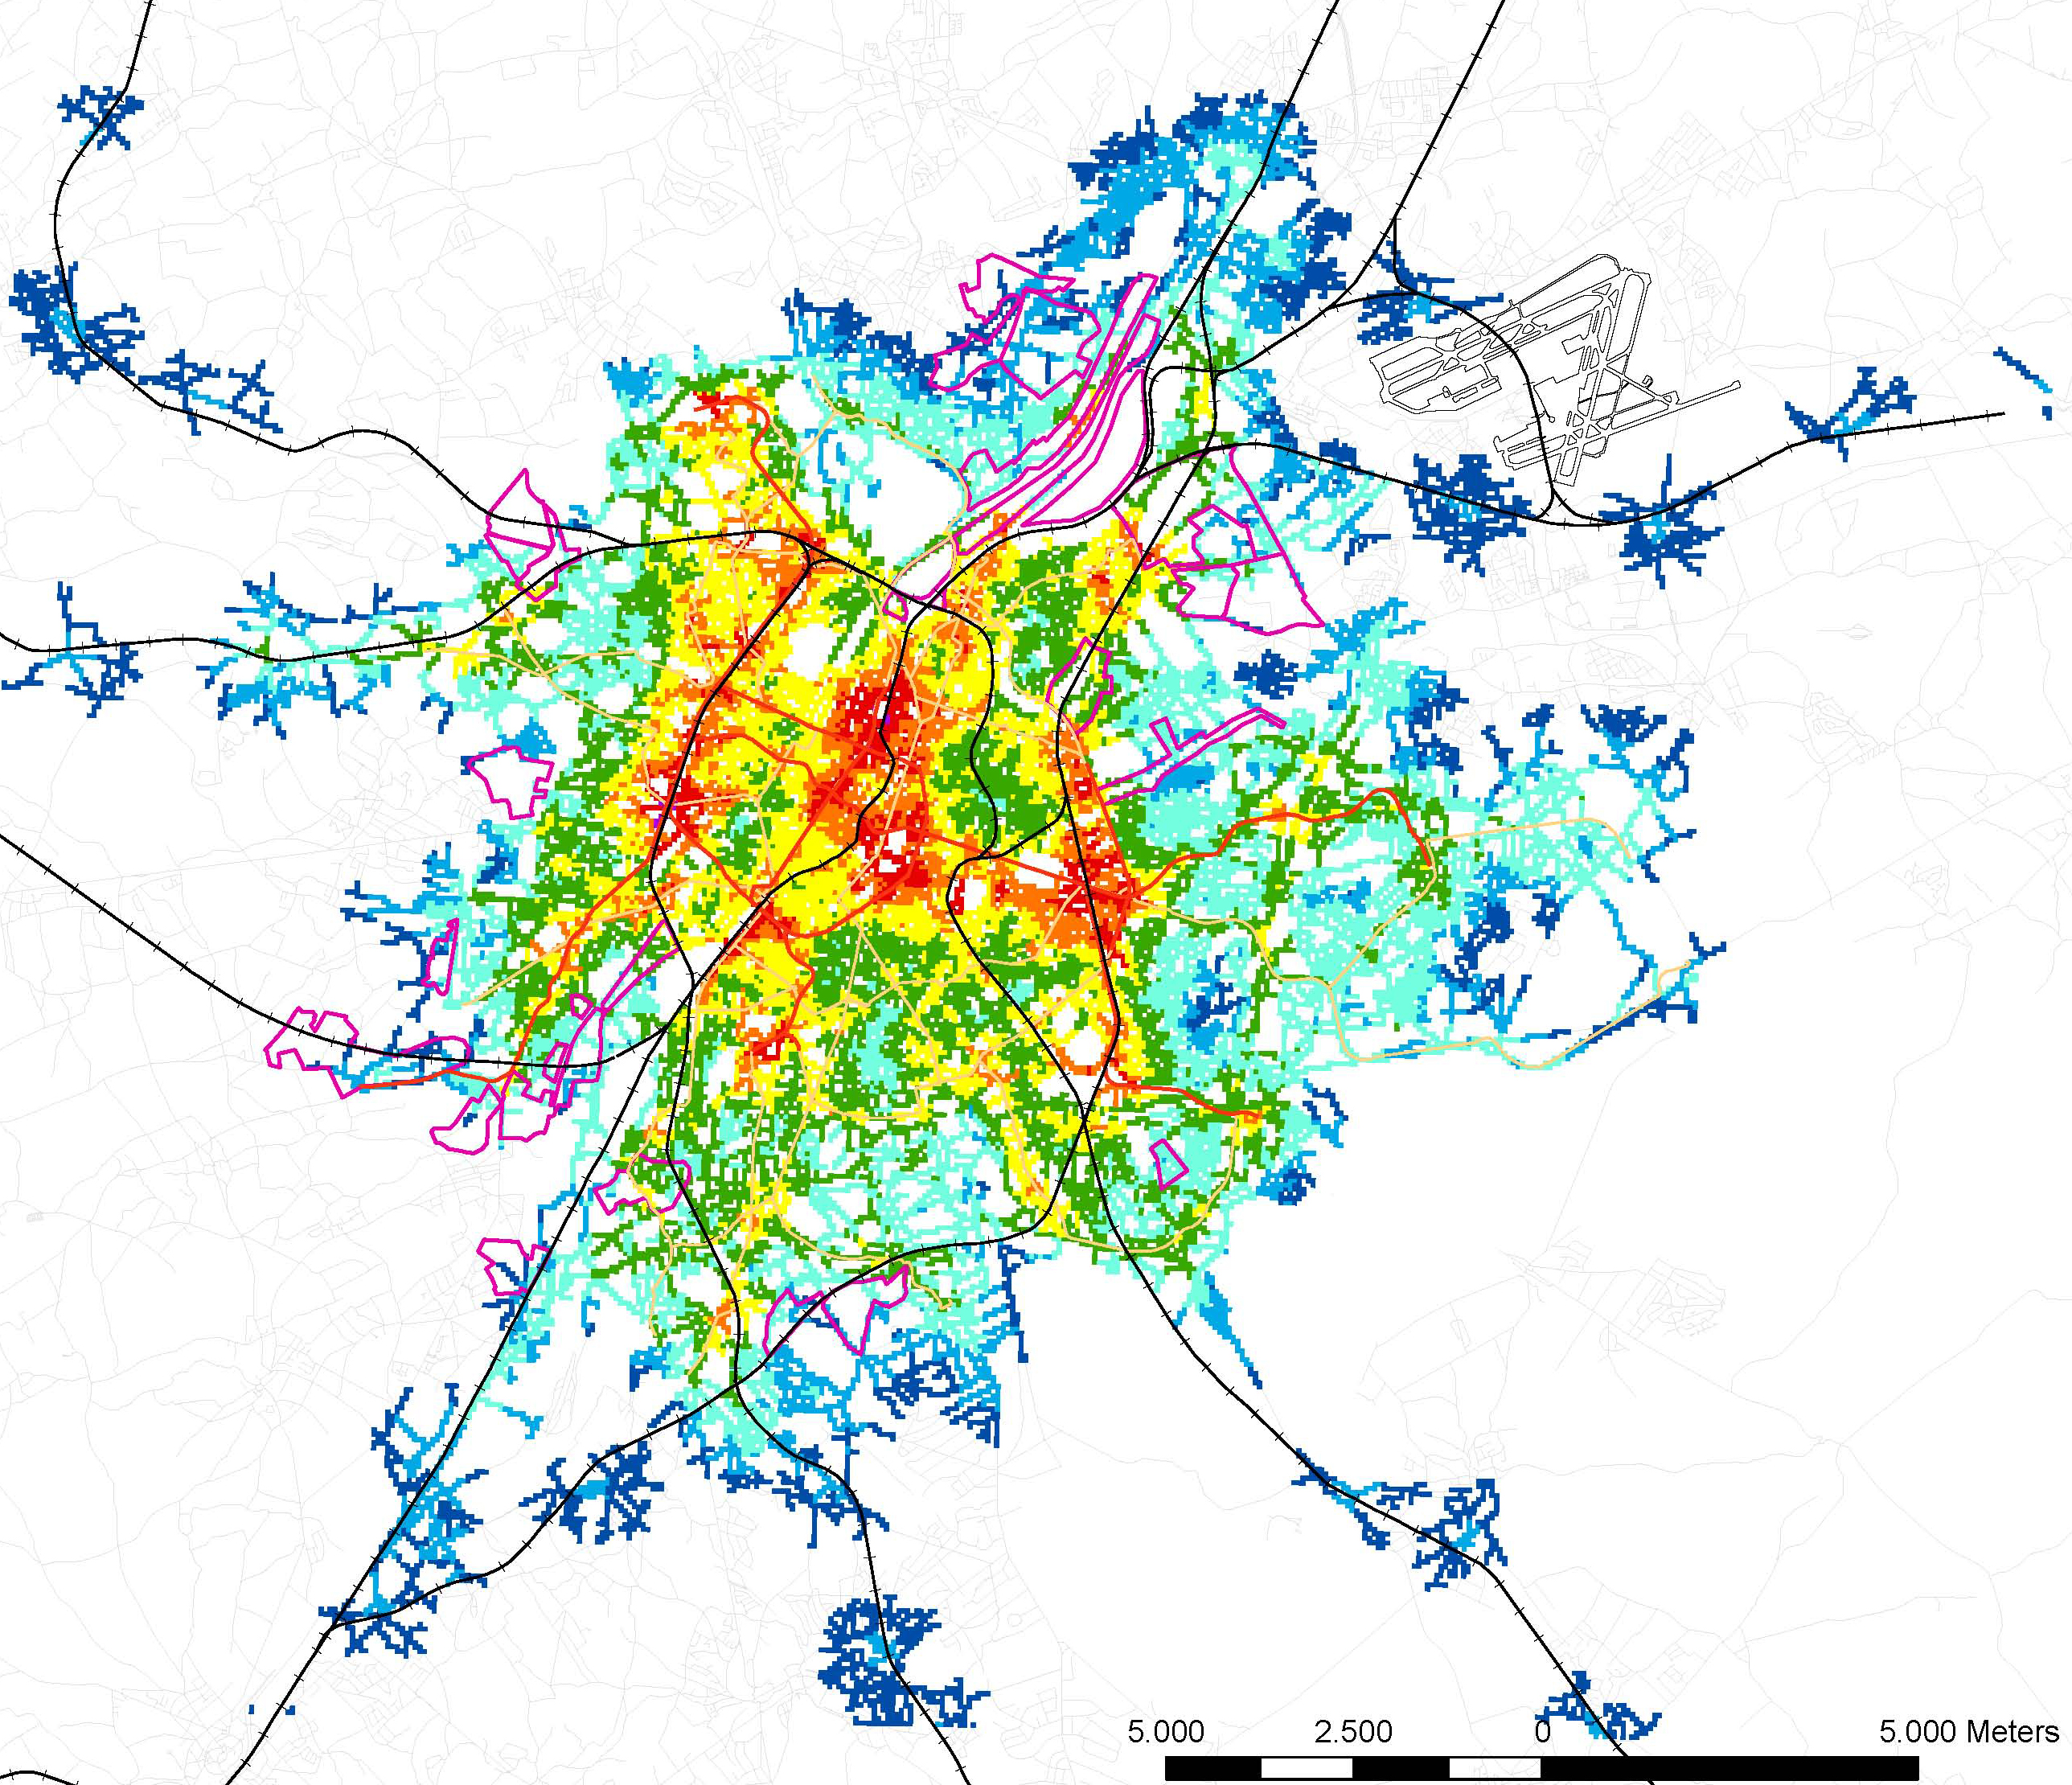 Systematica-Brussels 2040-Public Transport Accessibility Level